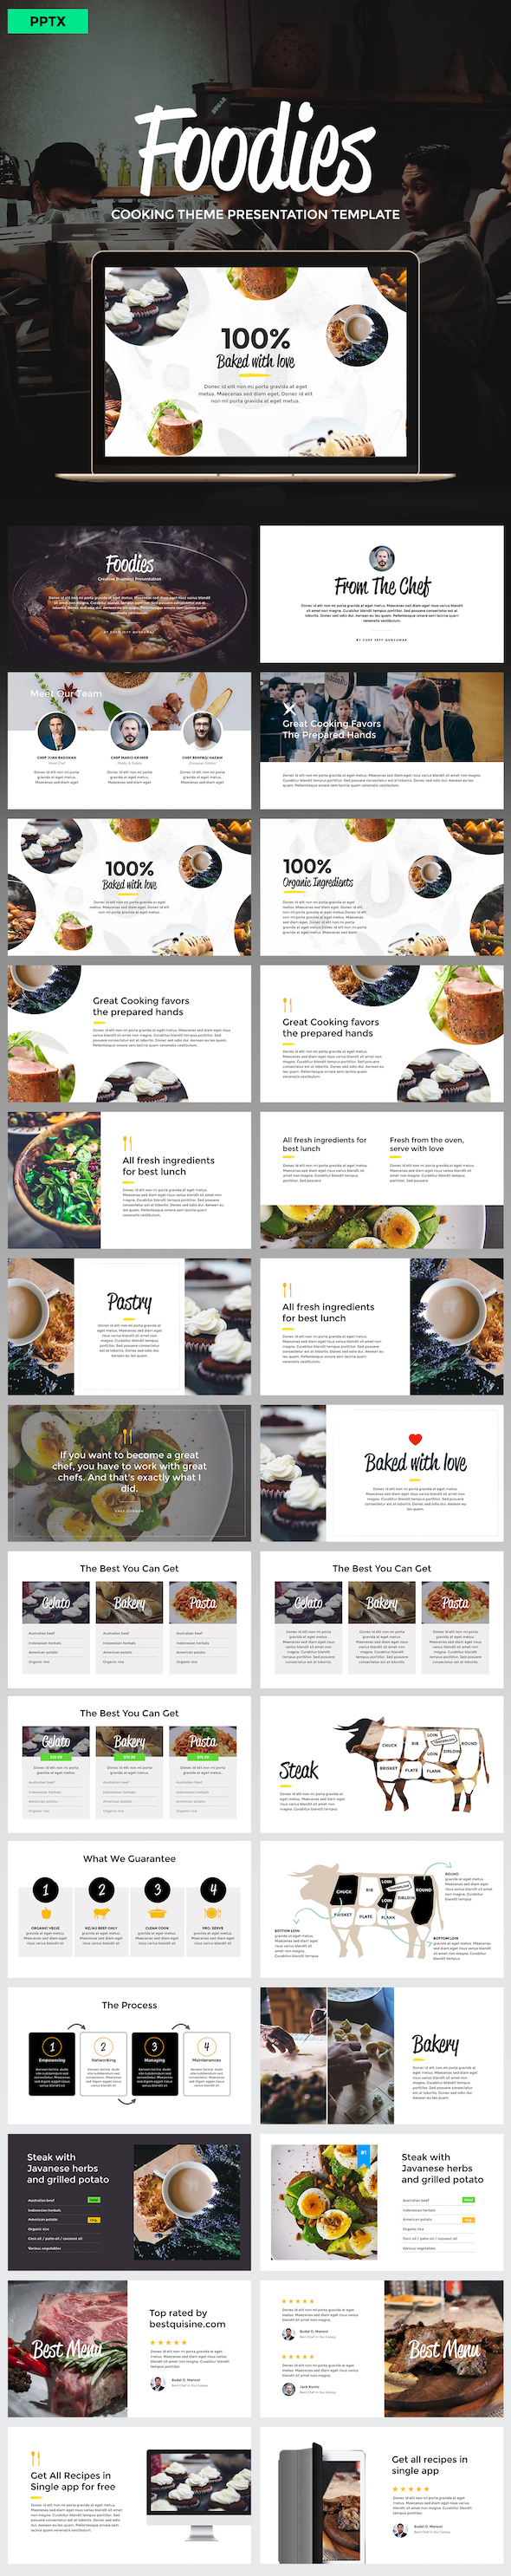 foodies - culinary theme powerpoint templateslidehack, Modern powerpoint